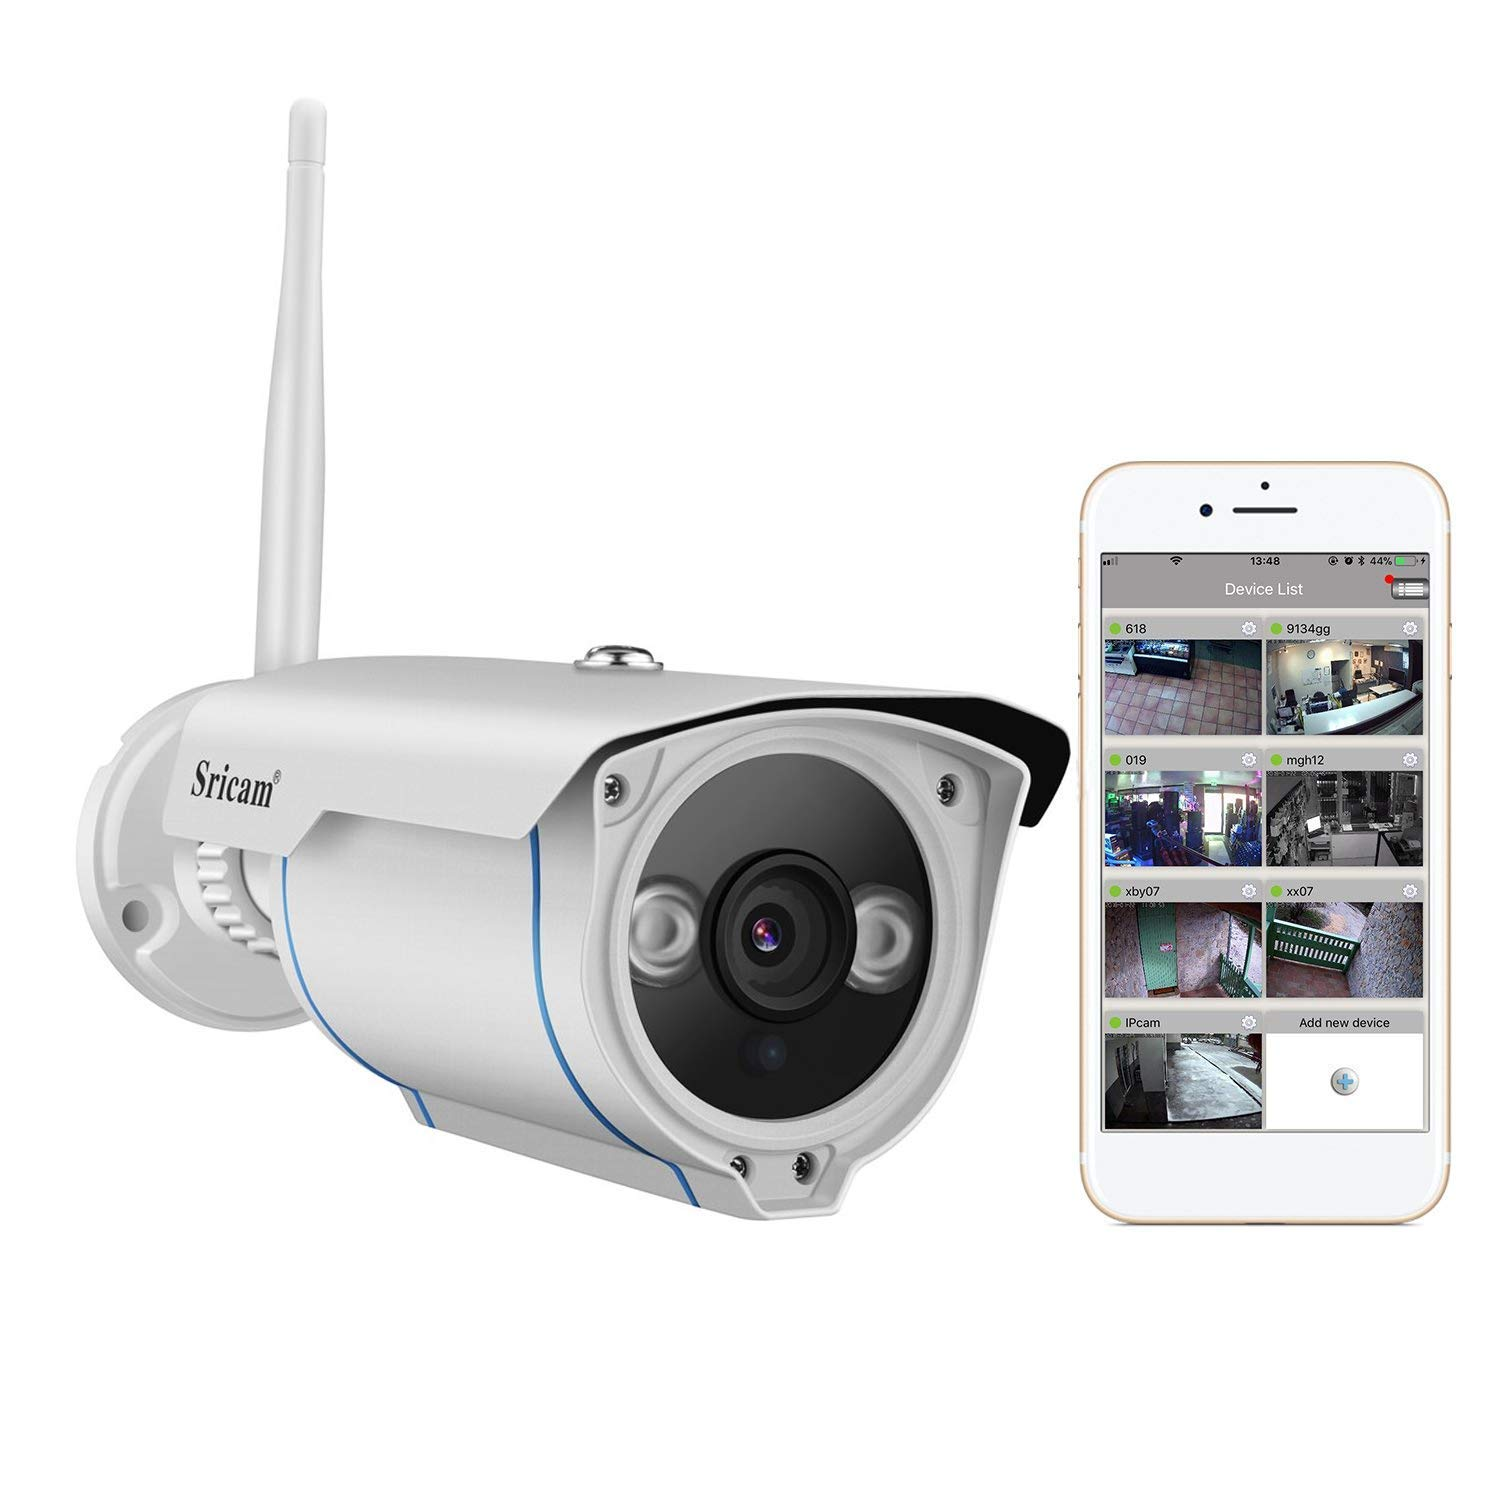 Outdoor Waterproof 1280*720p 1.0mp 2 Array Powerful Led Nightvision Bullet Ip Camera Onvif 2.0 Megapixel Lens Pure White And Translucent Surveillance Cameras Security & Protection